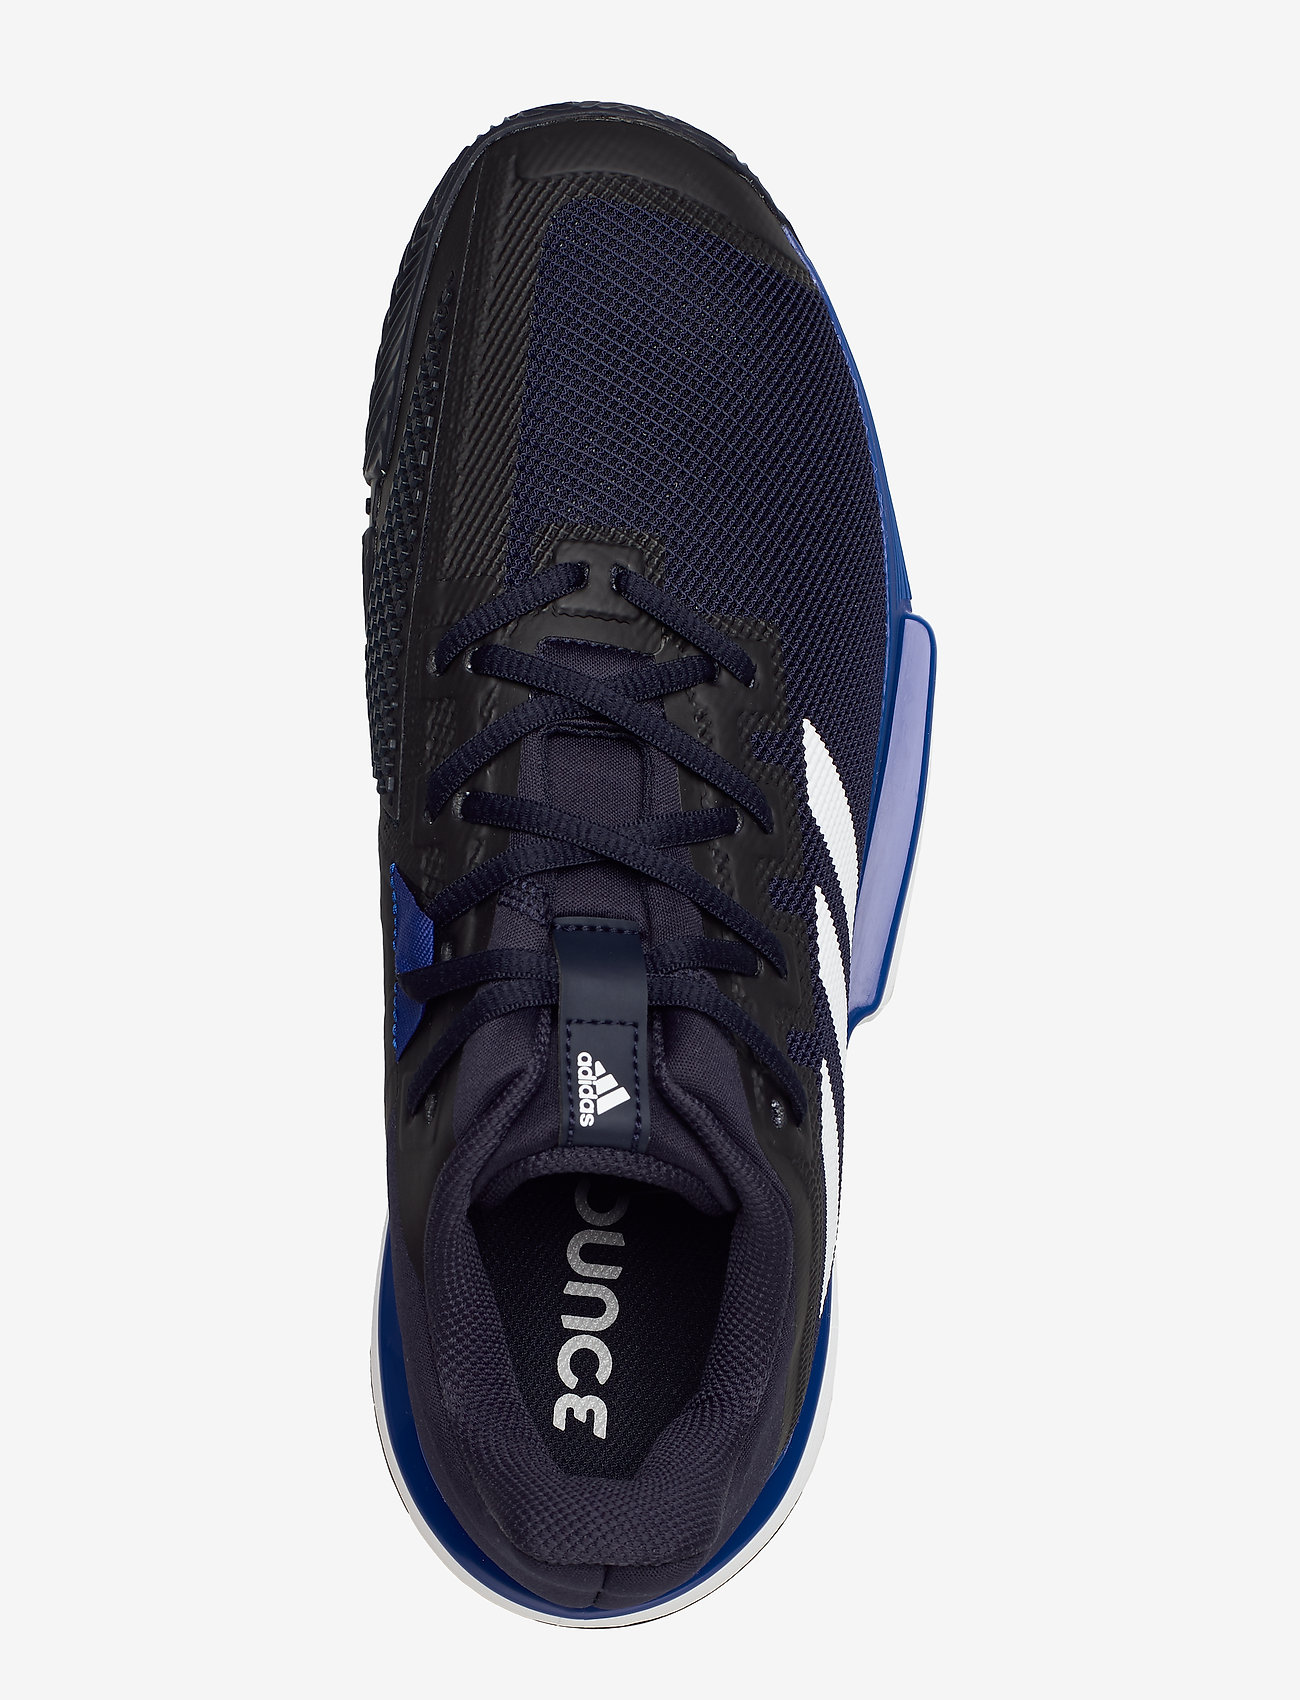 Solematch Bounce Clay Court Shoes (Legend Ink) - adidas Tennis